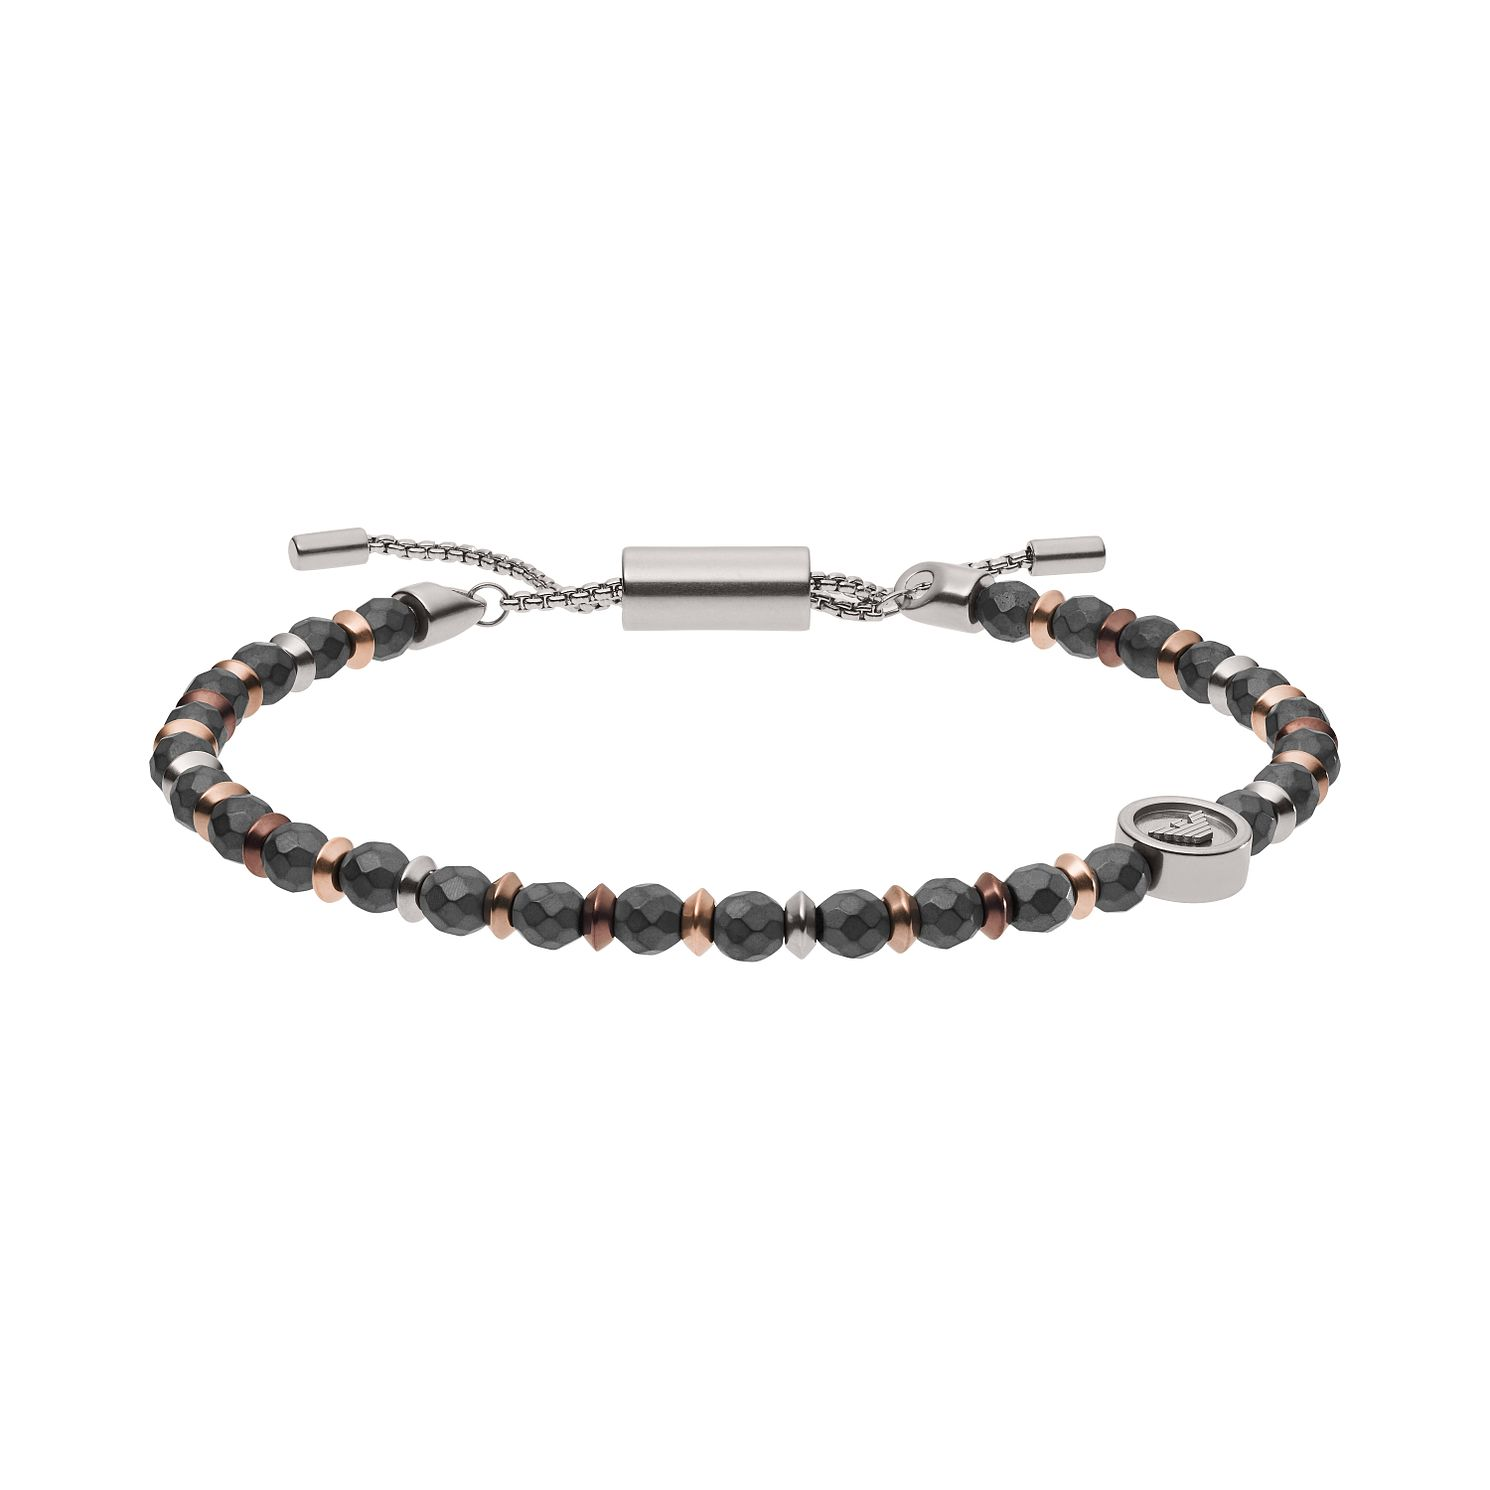 Emporio Armani Men's Light Magnesium Bead Bracelet - Product number 3485900